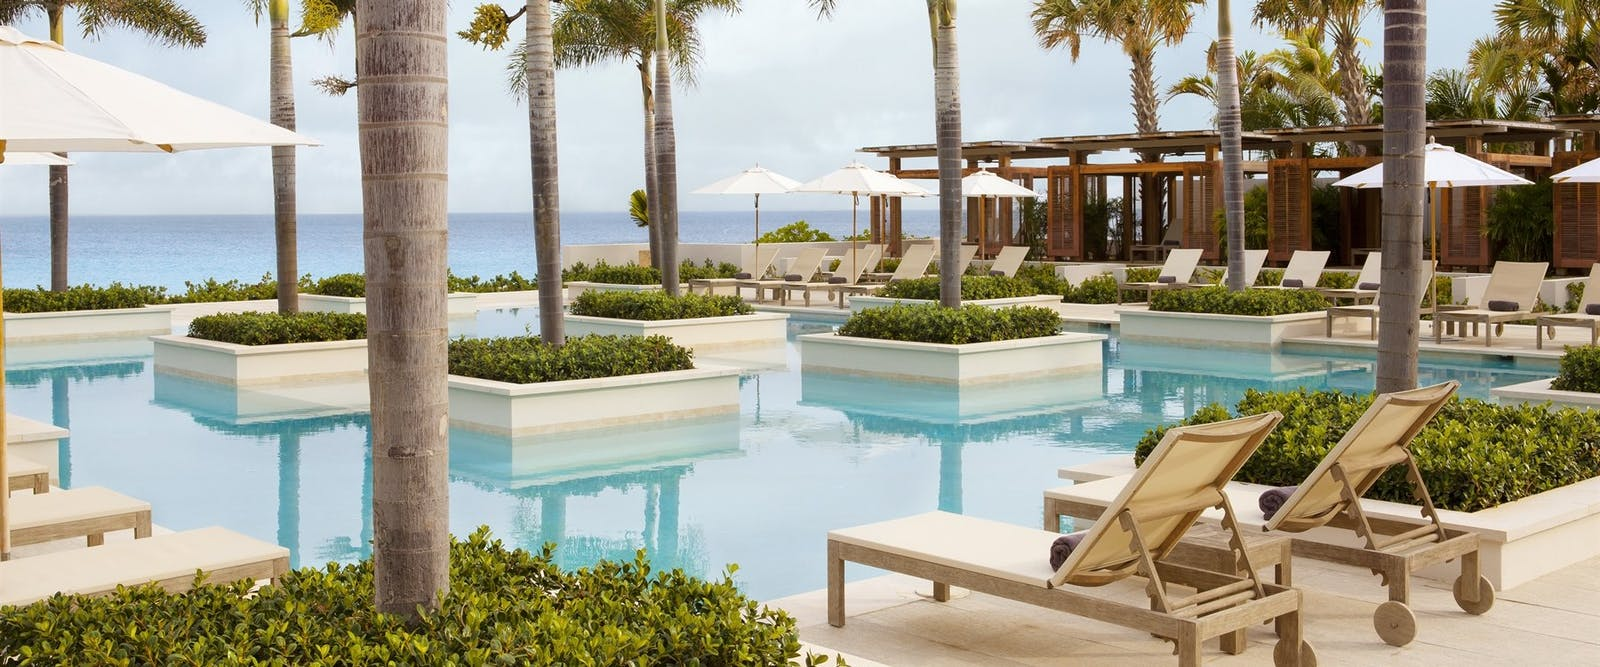 Resort sunrise pool at Four Seasons Anguilla Resort